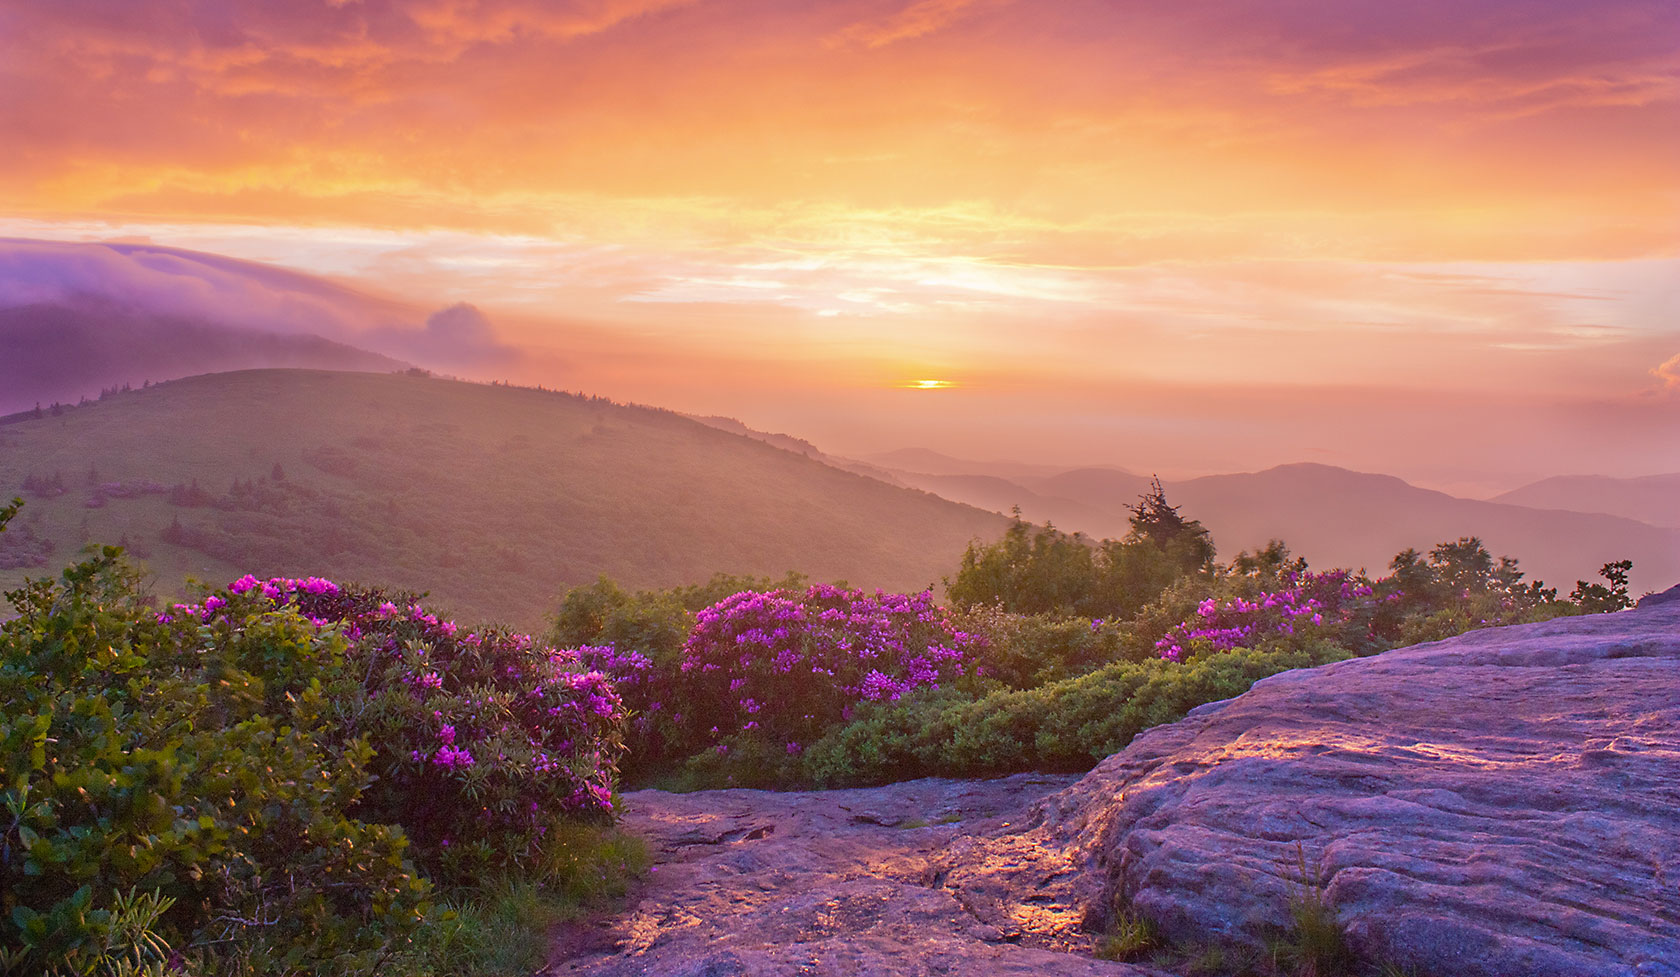 Summer in the Blue Ridge Mountains, North Carolina